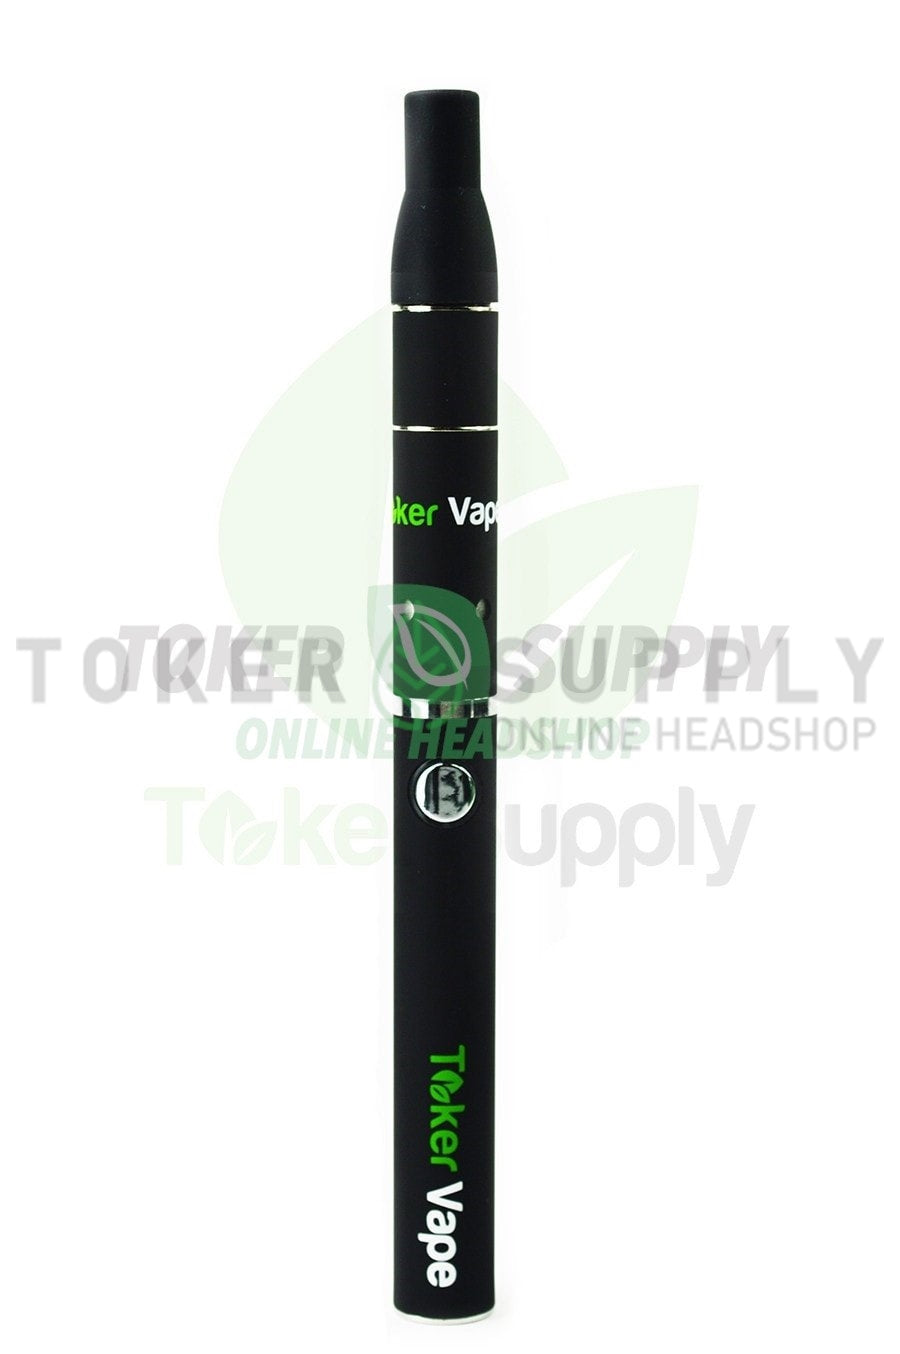 Cheap herbal vaporizers - Toker Vape Dry Herb Vaporizer Black